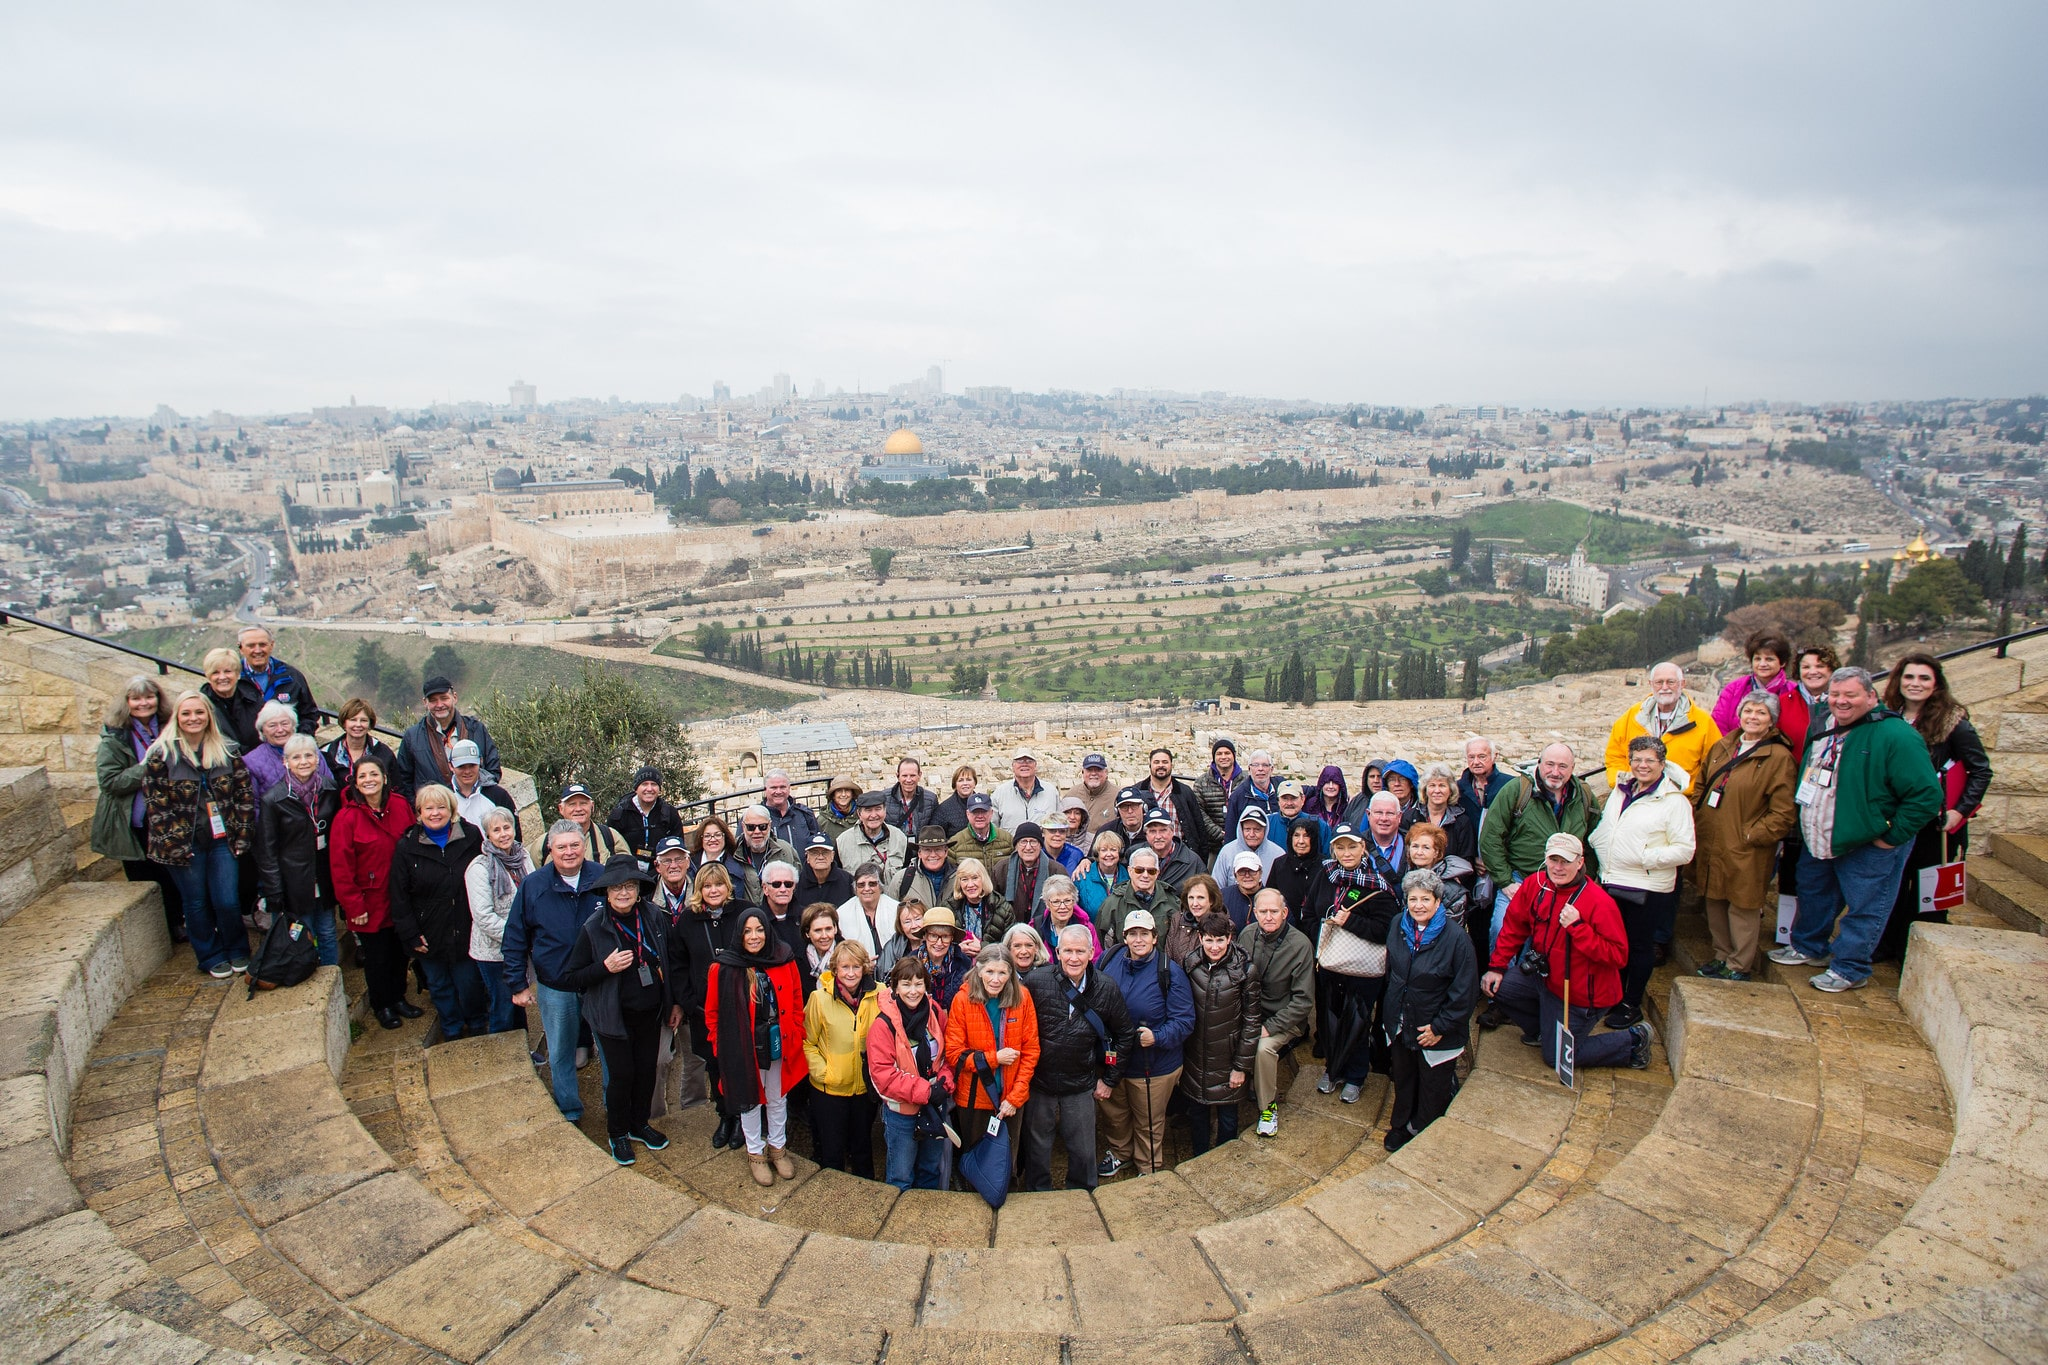 Photo of the 2018 Freedom Alliance Israel tour group overlooking Jersusalem